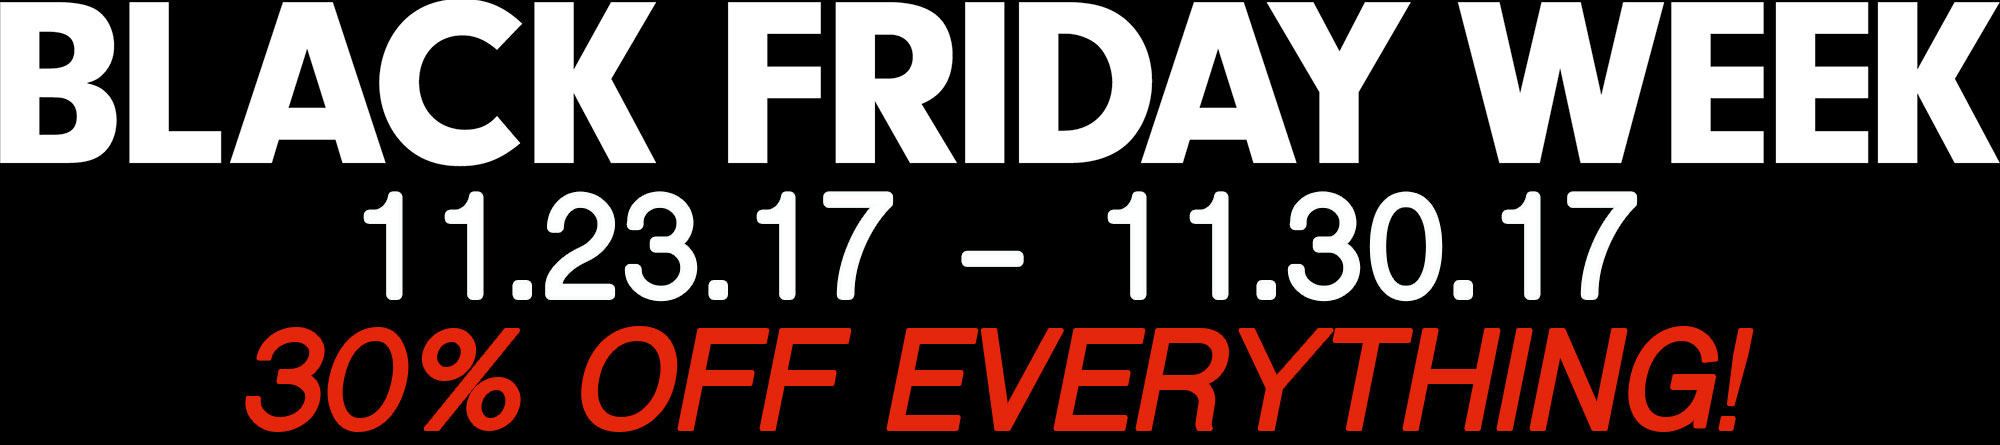 black-friday2-2017.jpg